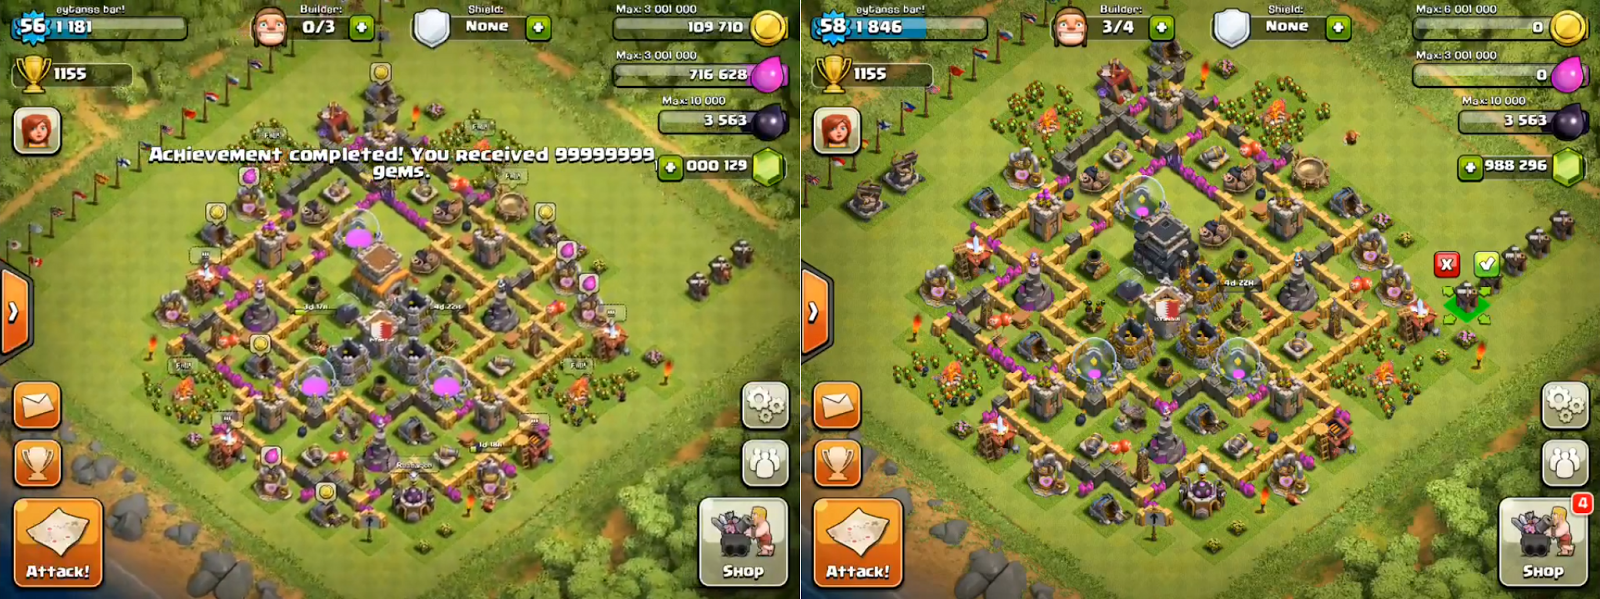 clash of clans clash of clans cheat clash of clans cheat 2013 clash